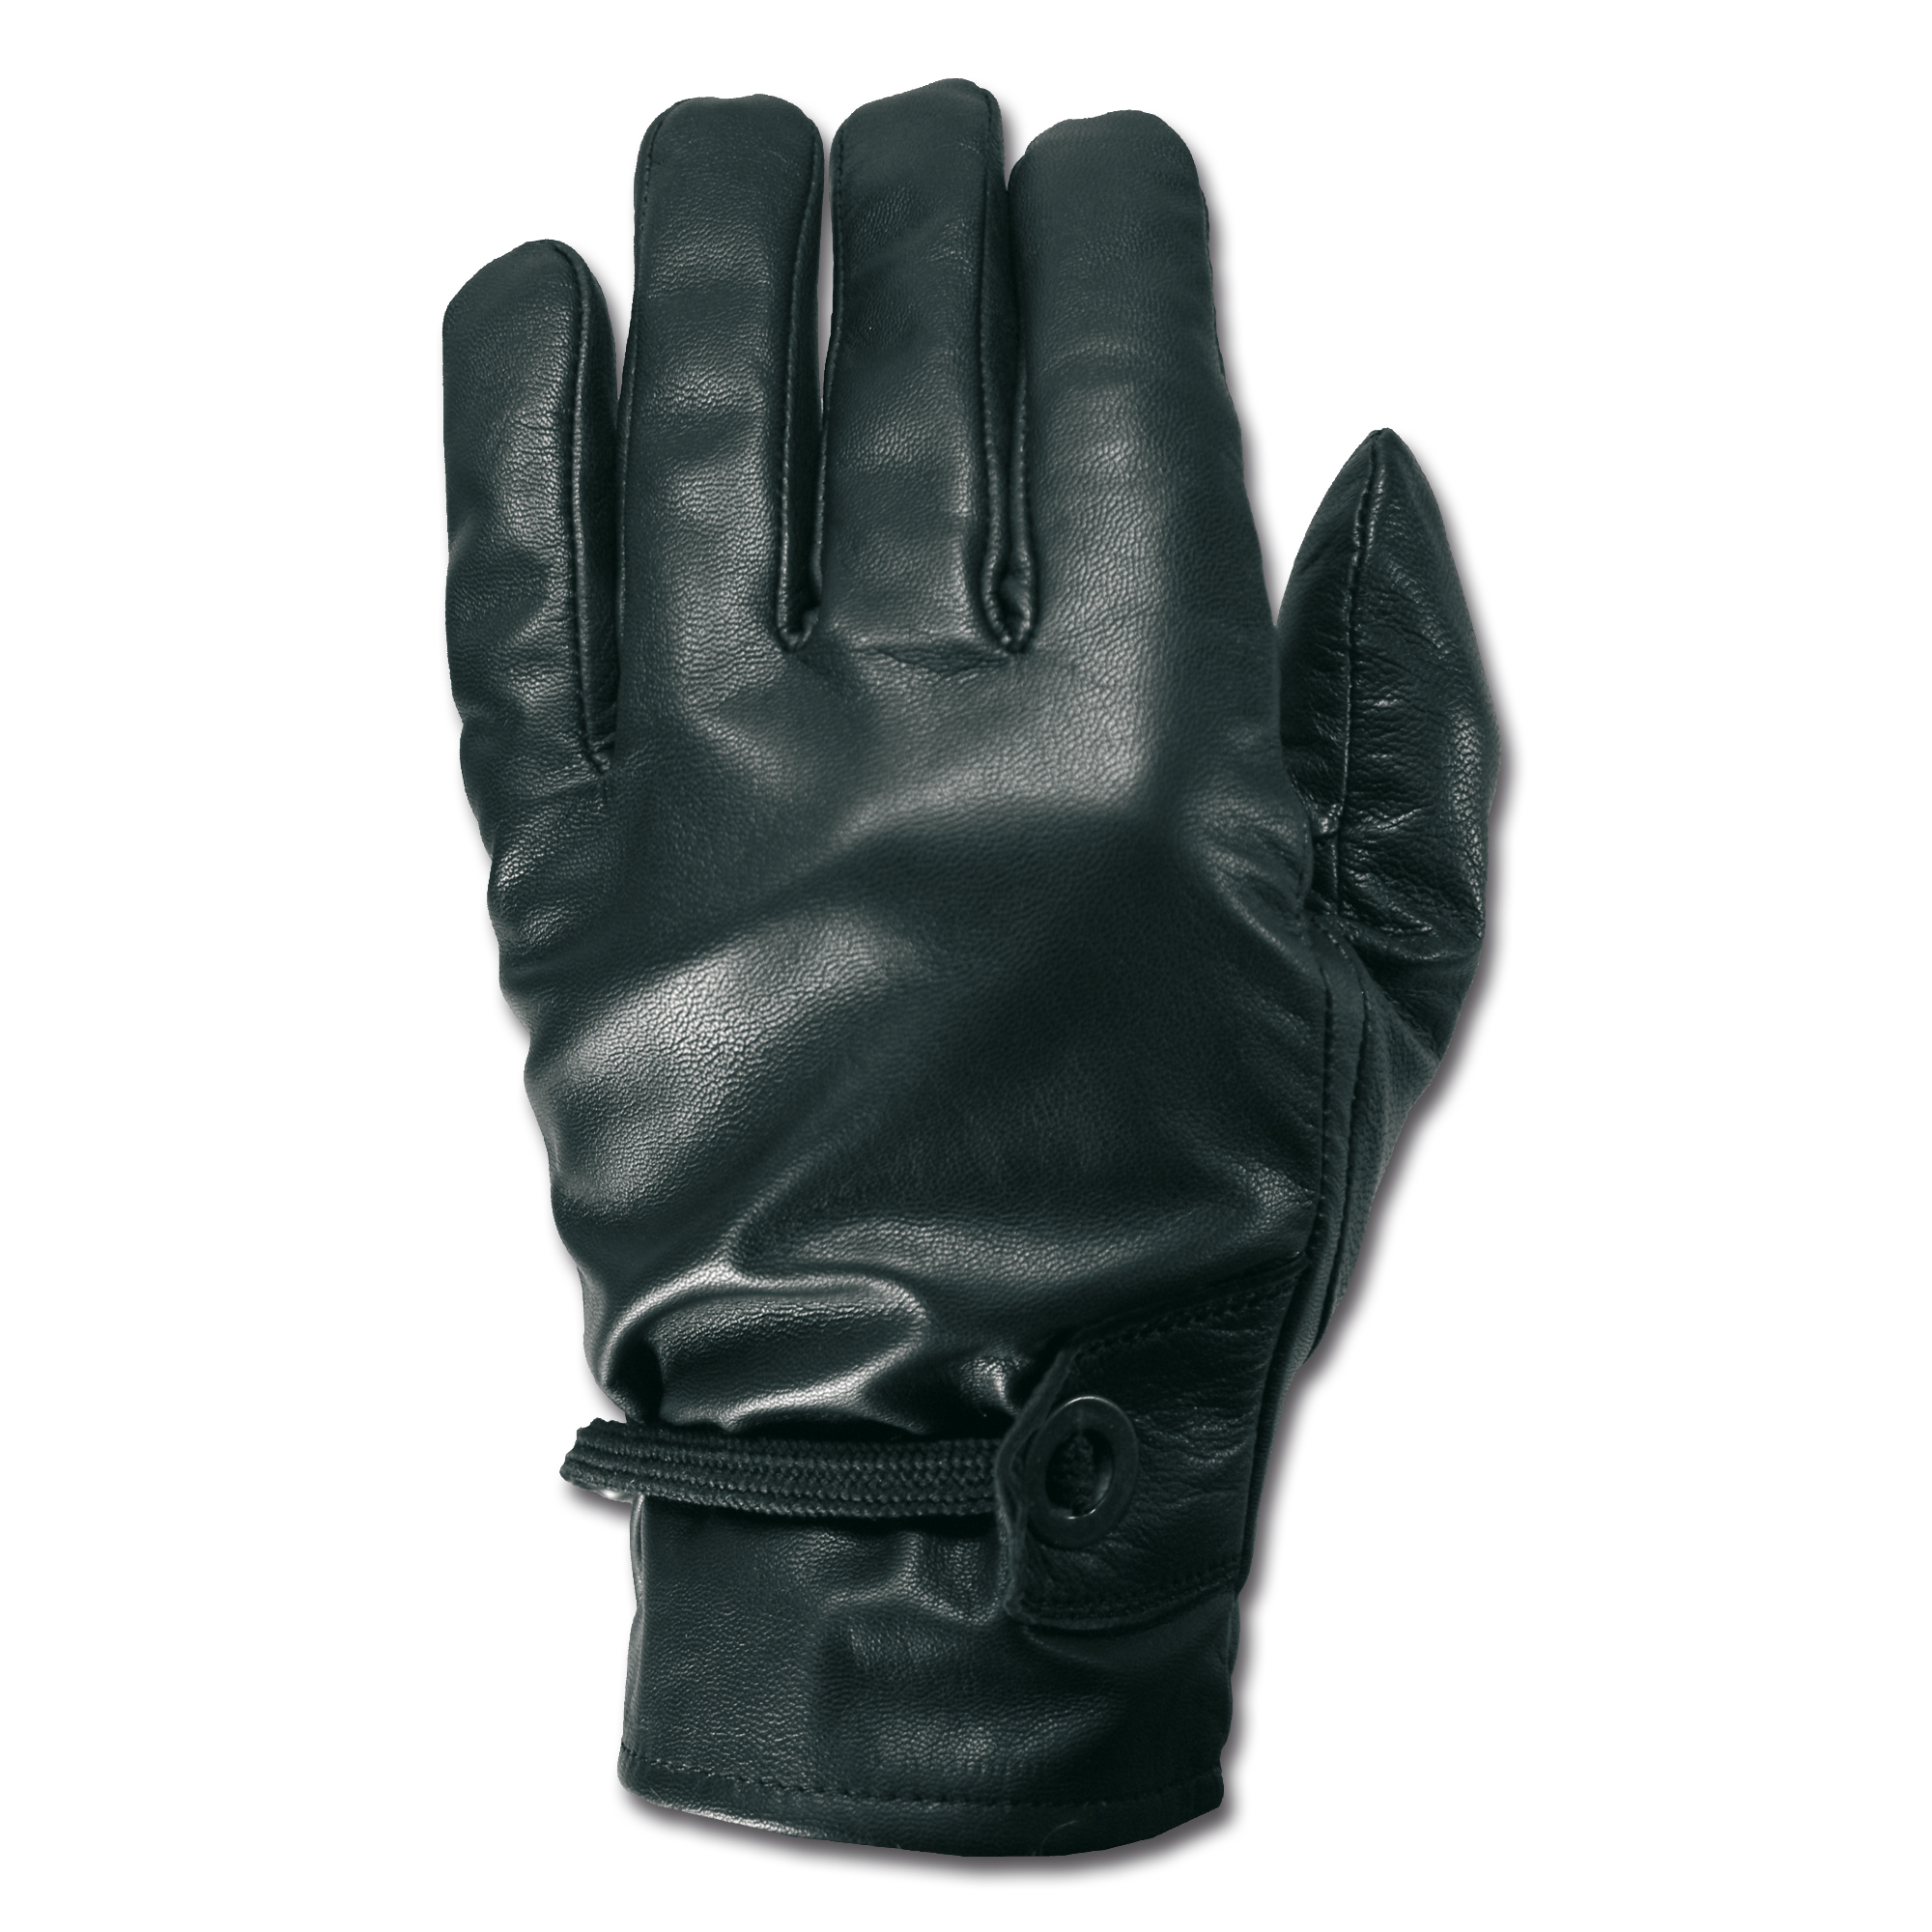 Guantes Western negros